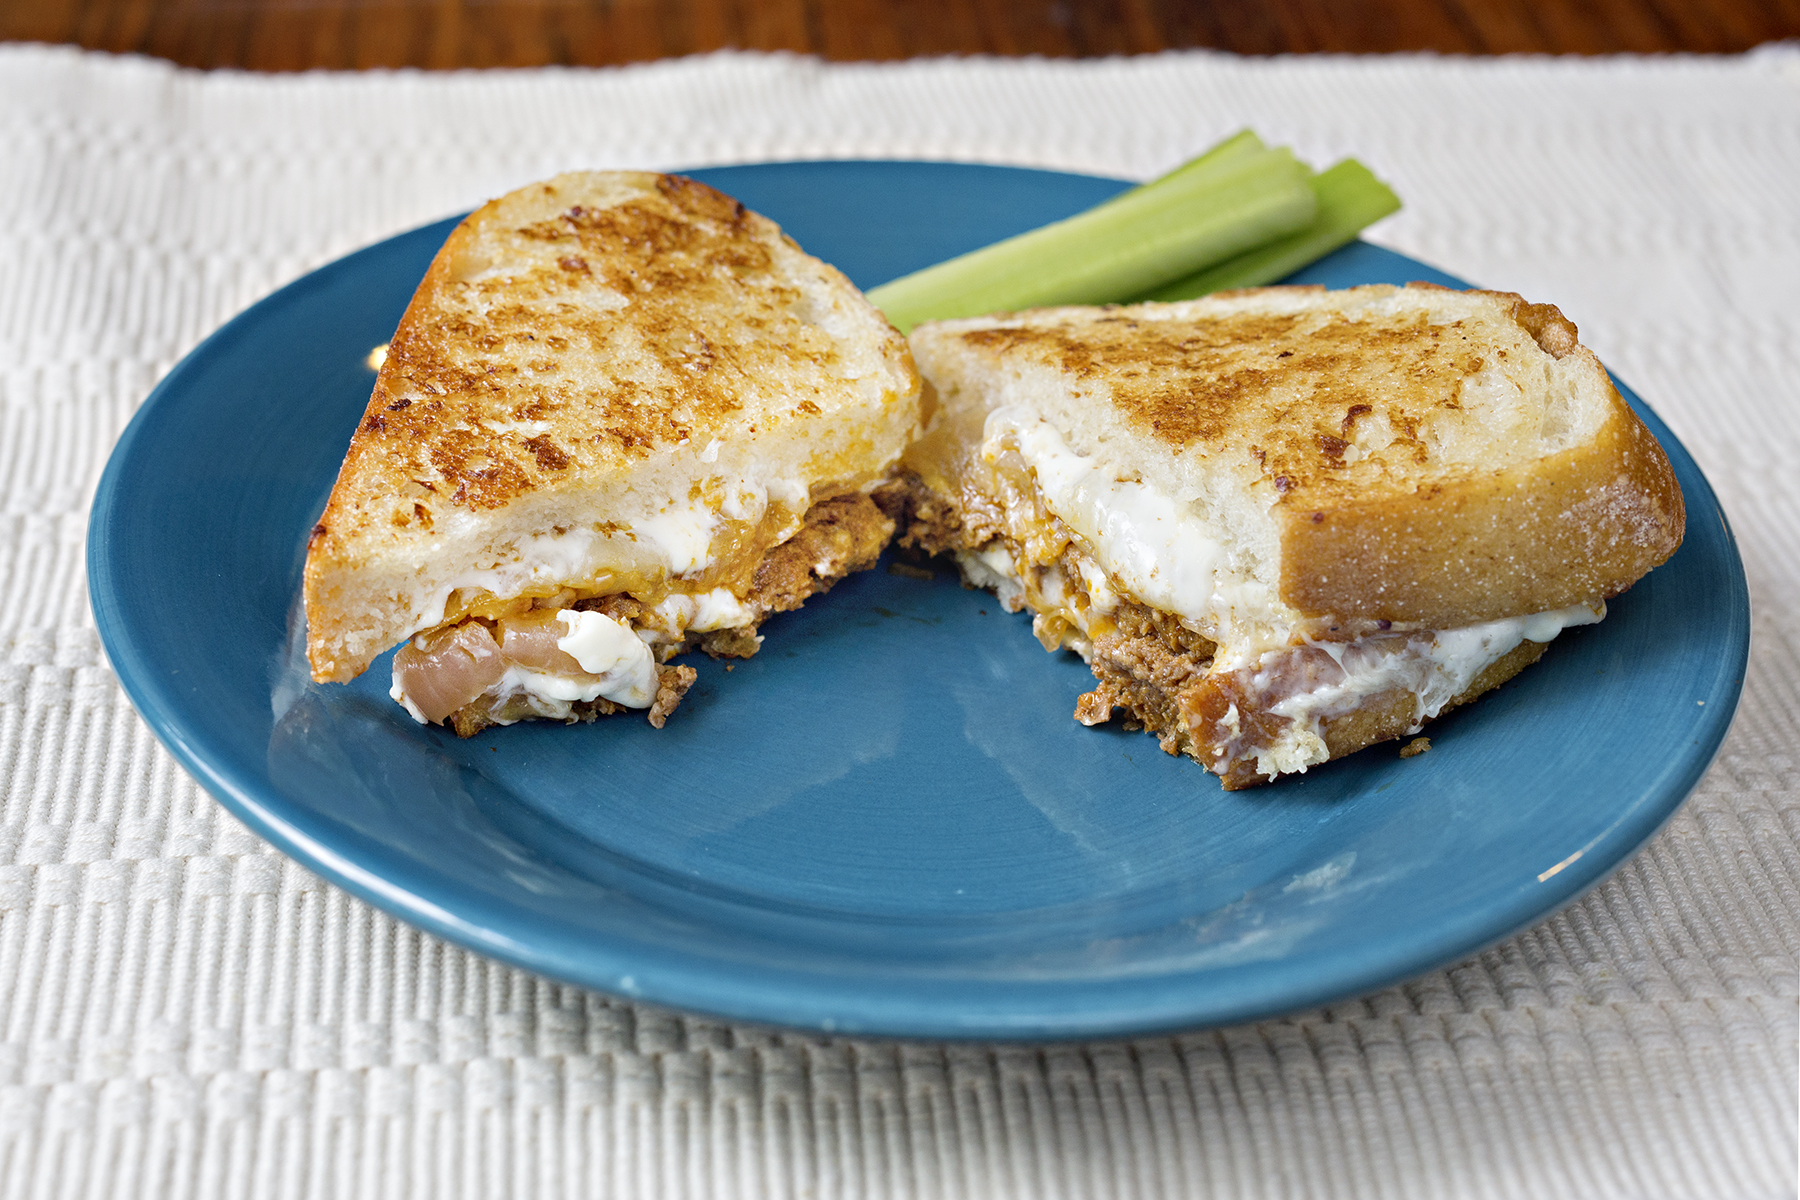 Wild game sausage recipes: Ultimate grilled cheese!Laura\'s Wild Kitchen